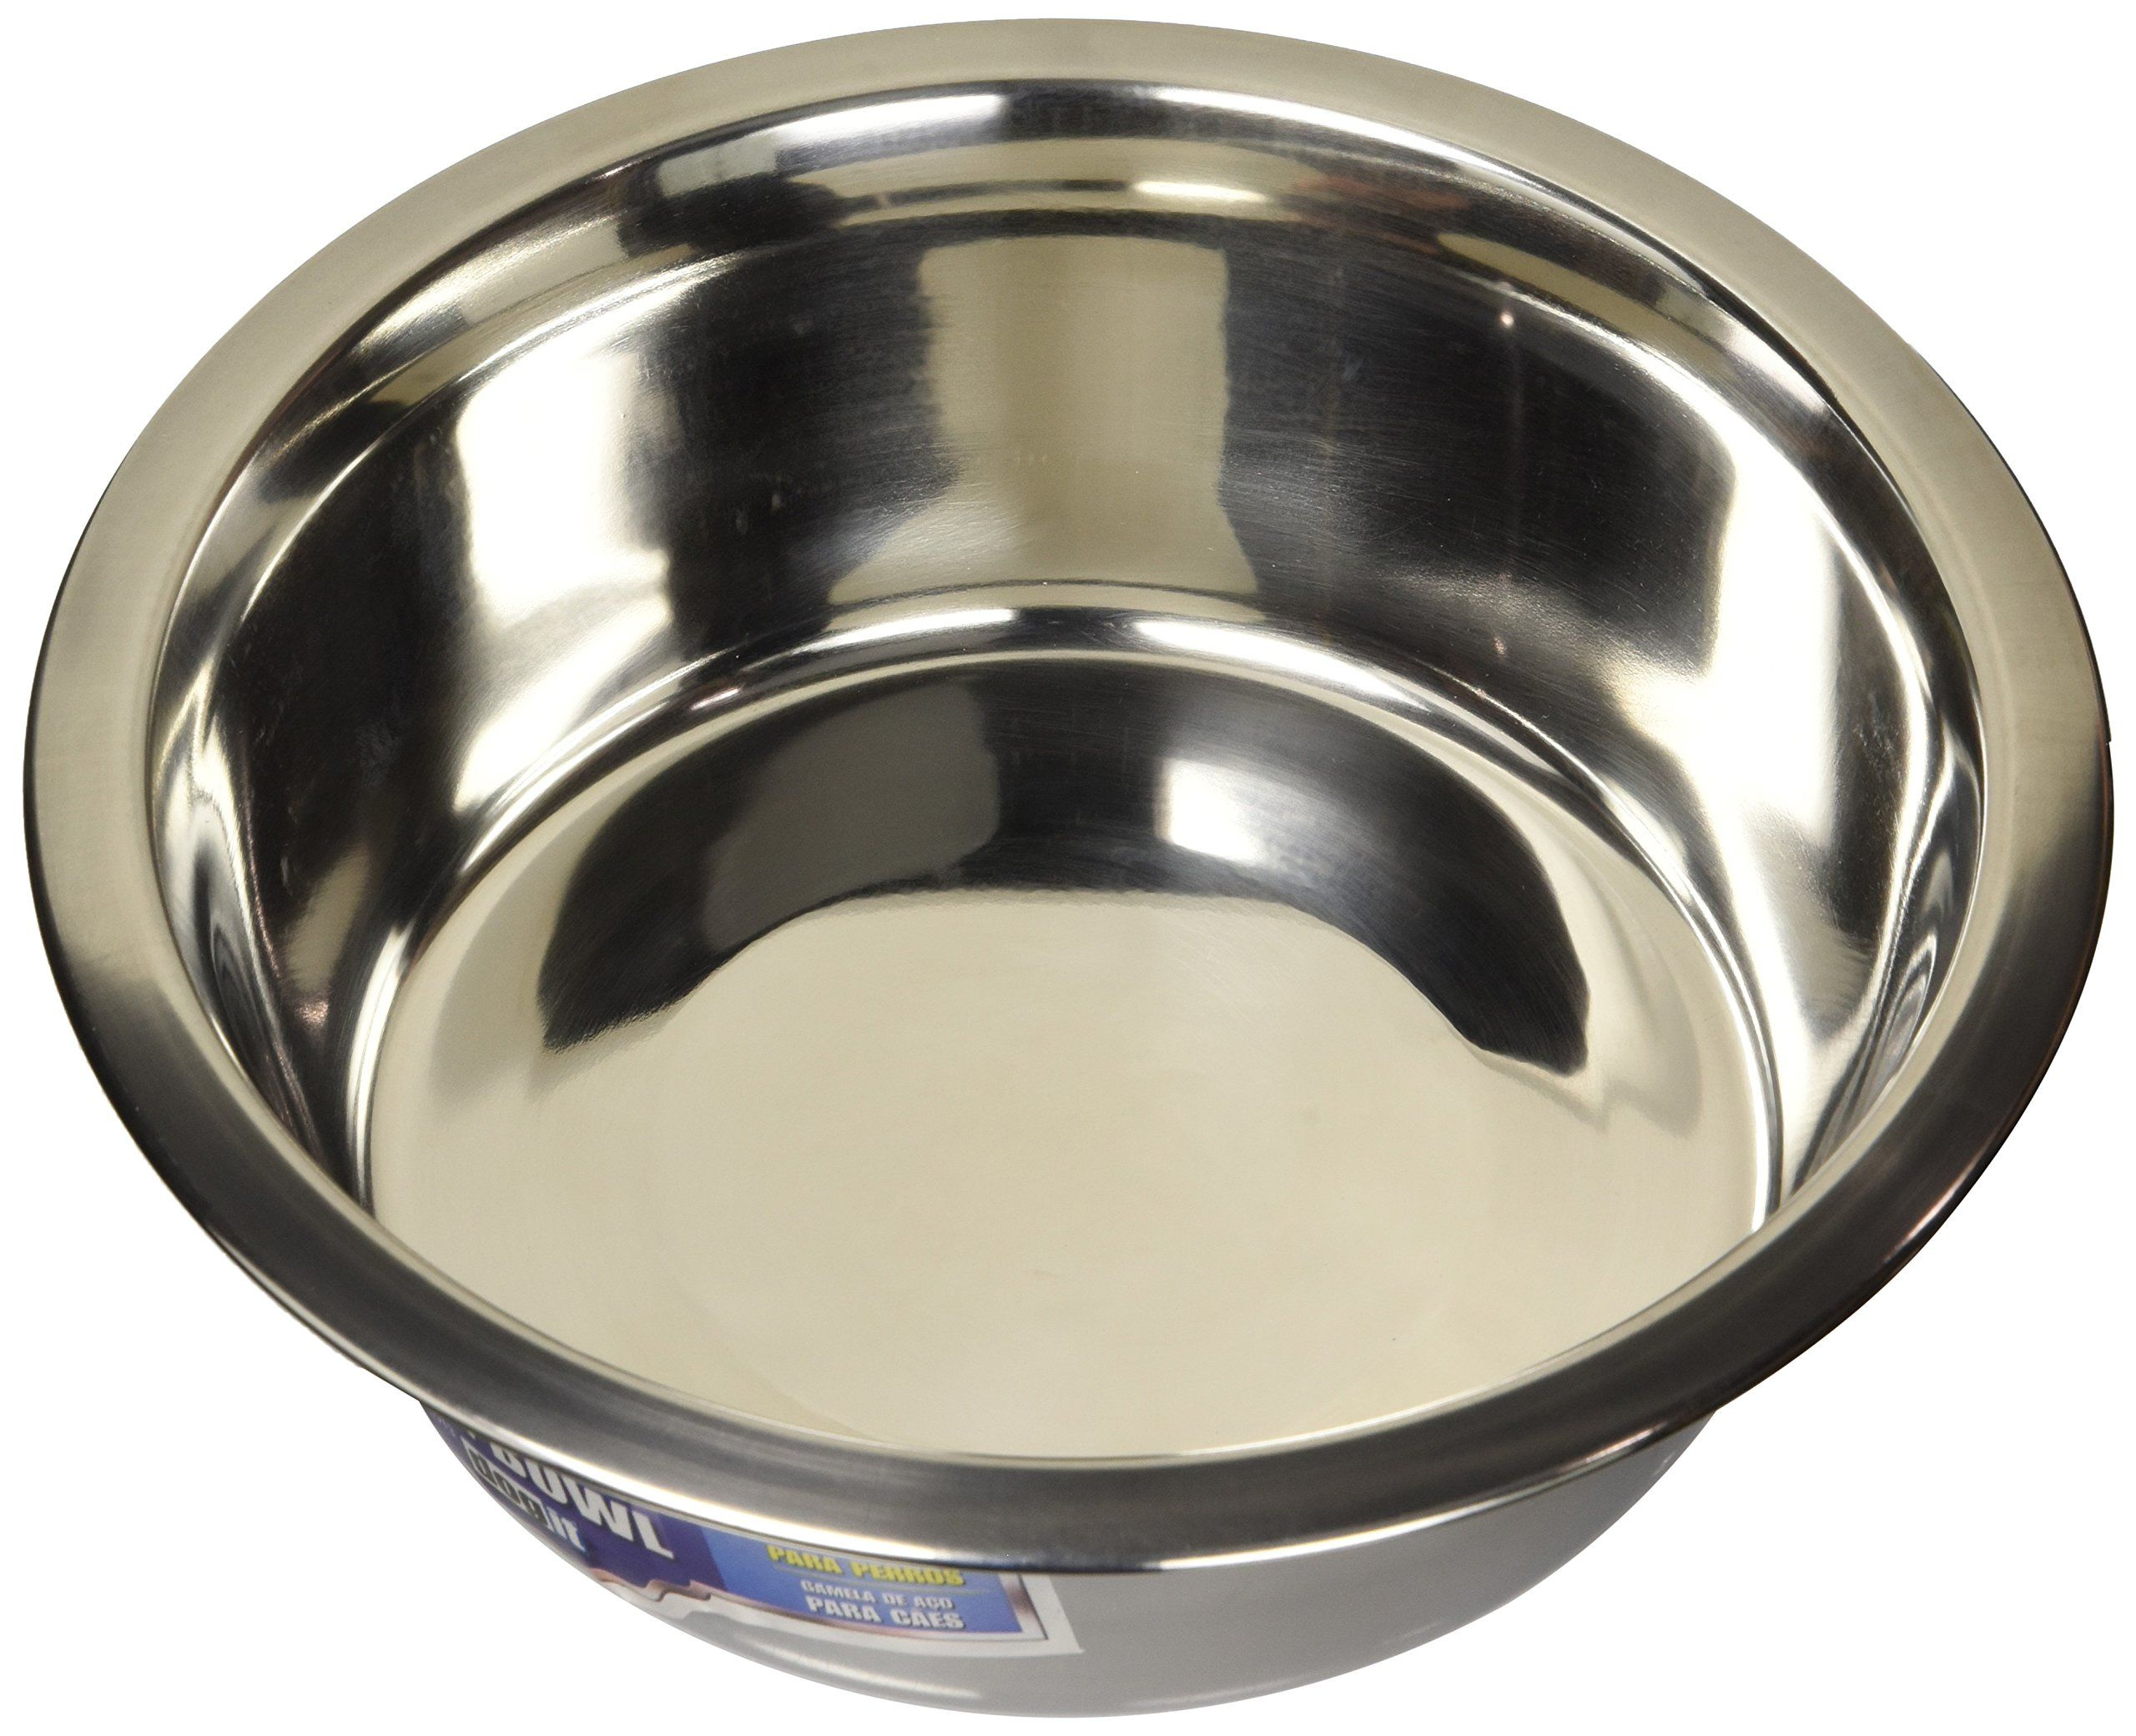 Dogit 73513 stainless steel dog bowl 50 oz see this